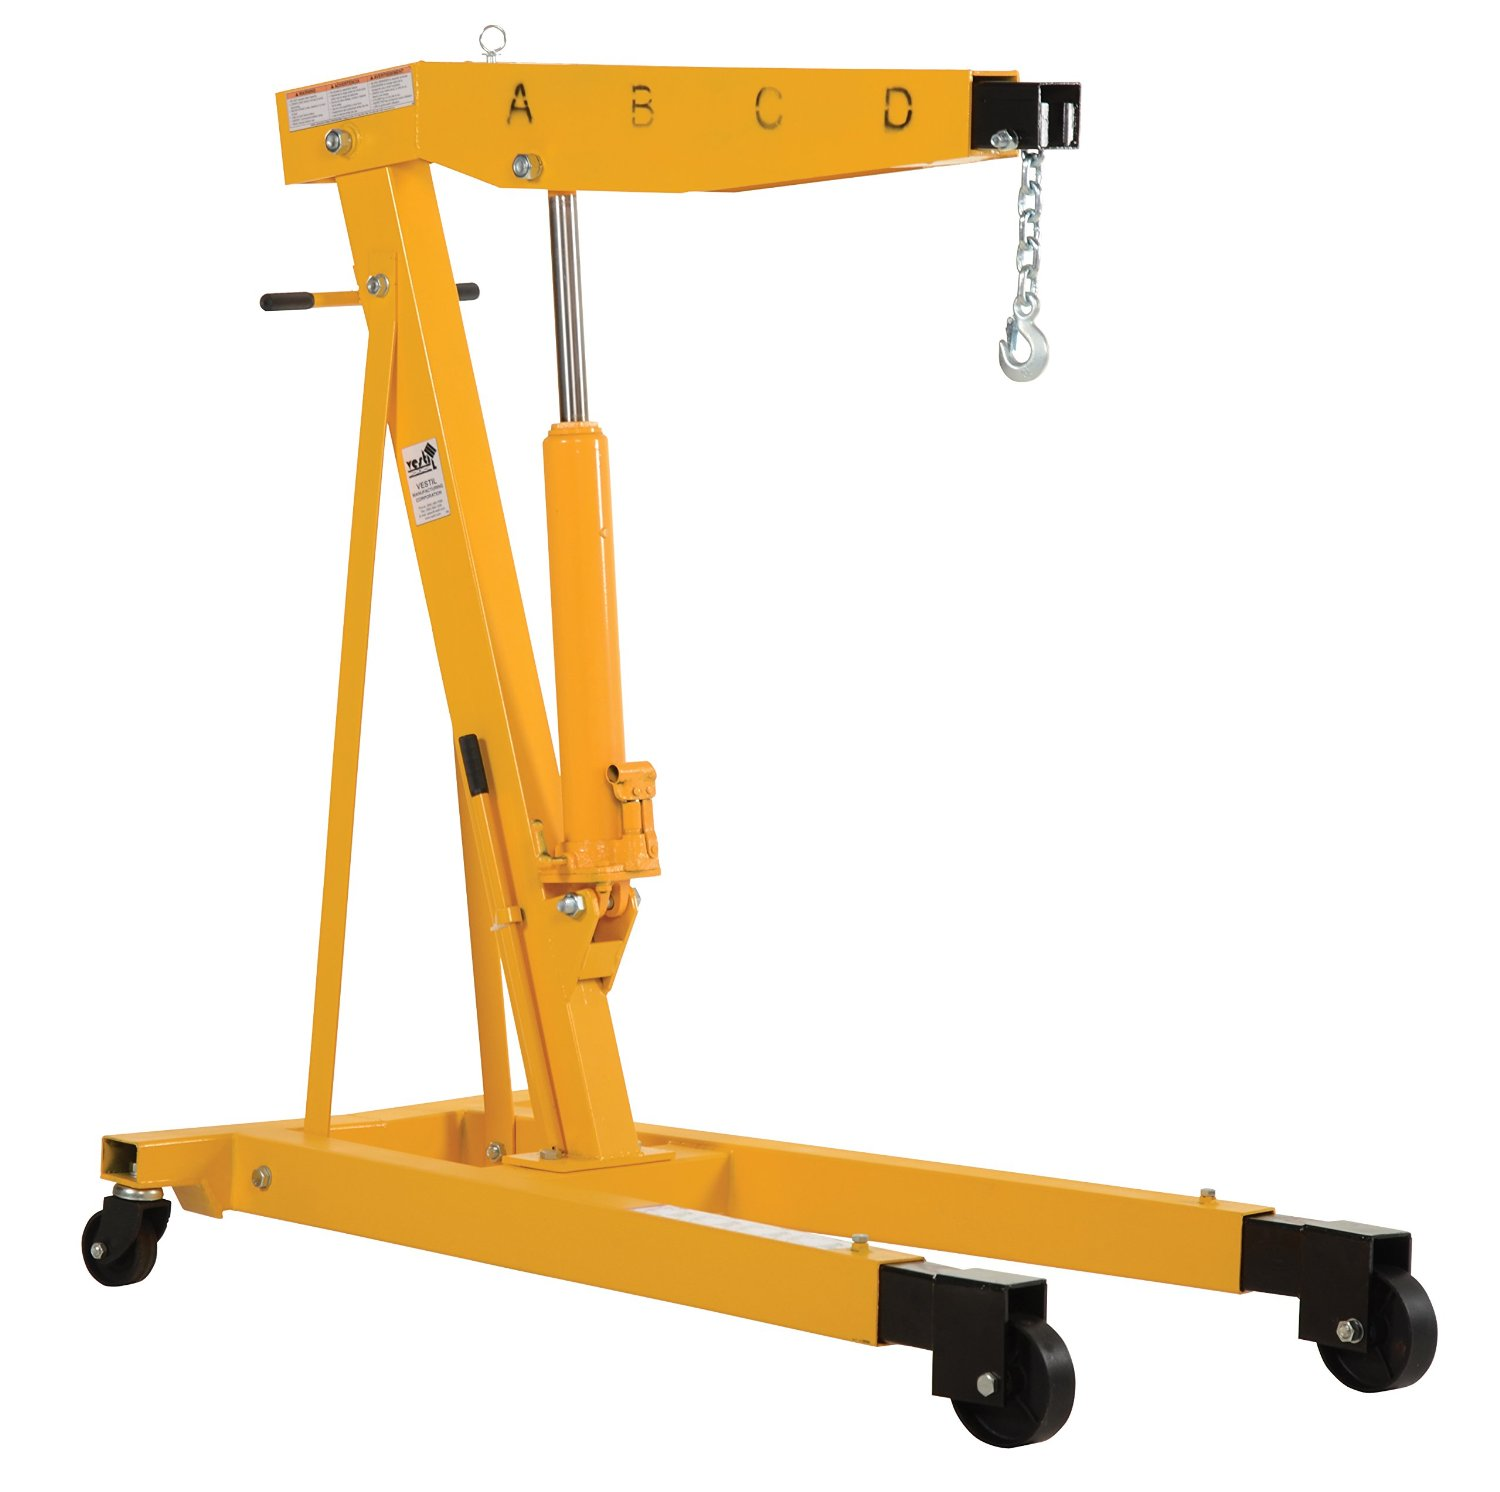 Vestil ehn 60 t engine hoist review knockoutengine for Motor lift for sale